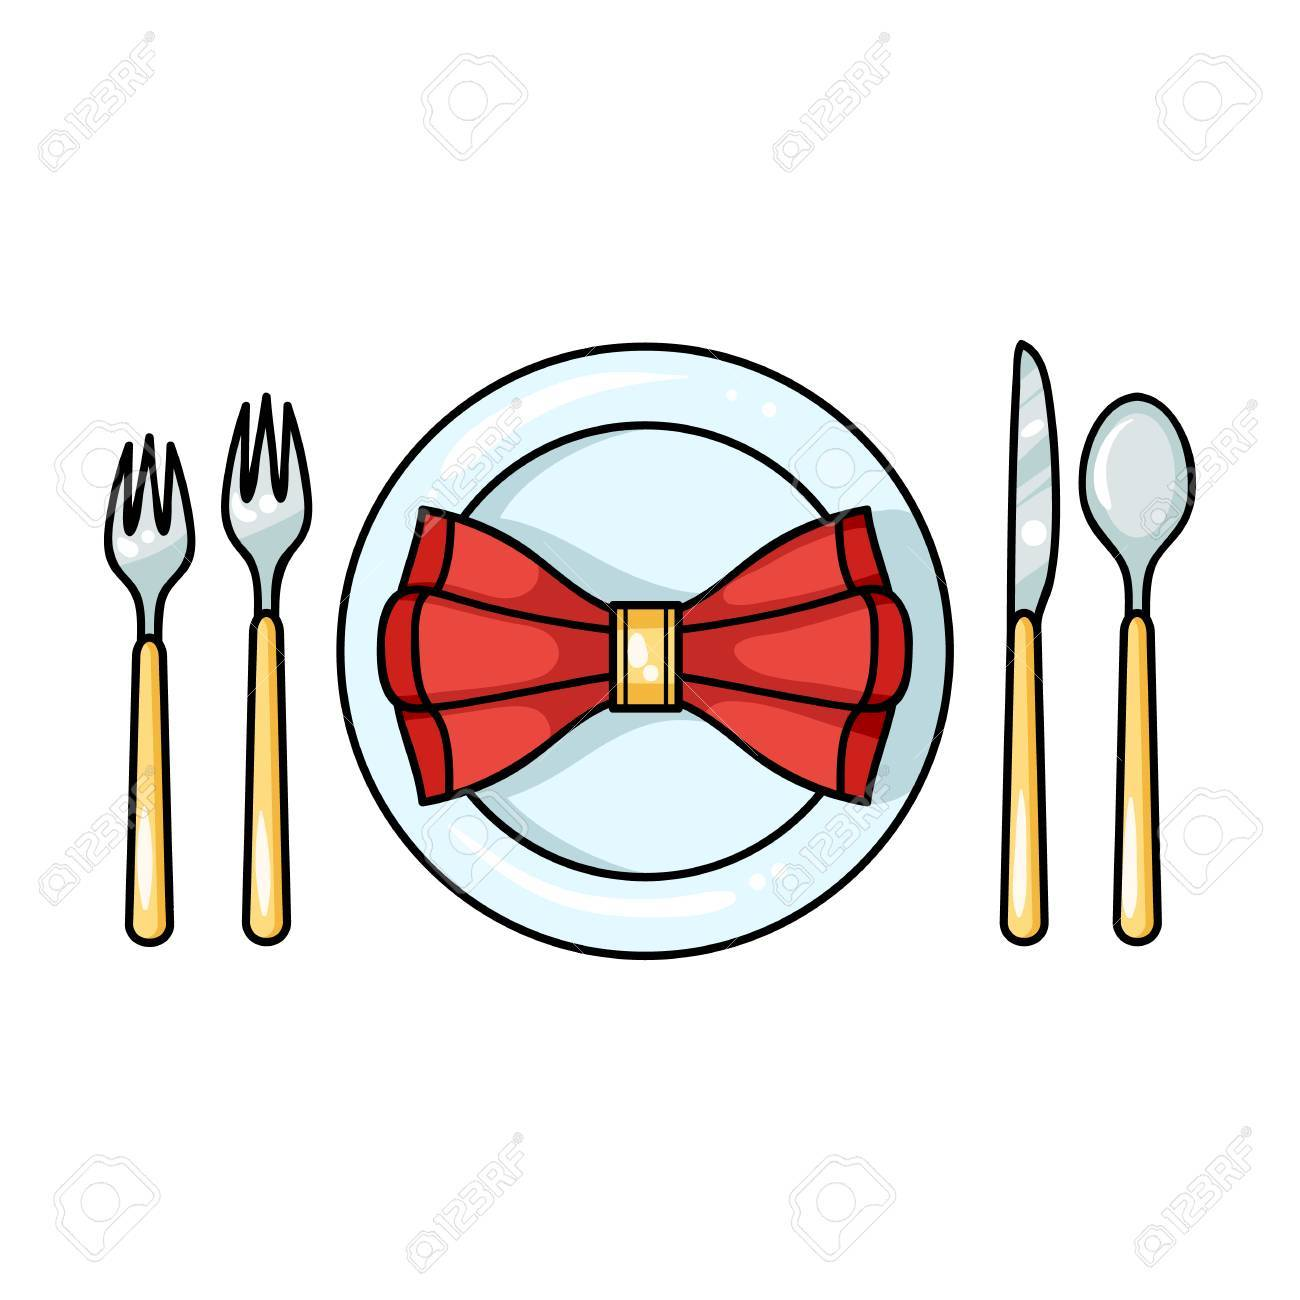 Dessin Restaurant restaurant table cartoonting icon in cartoon style isolated on